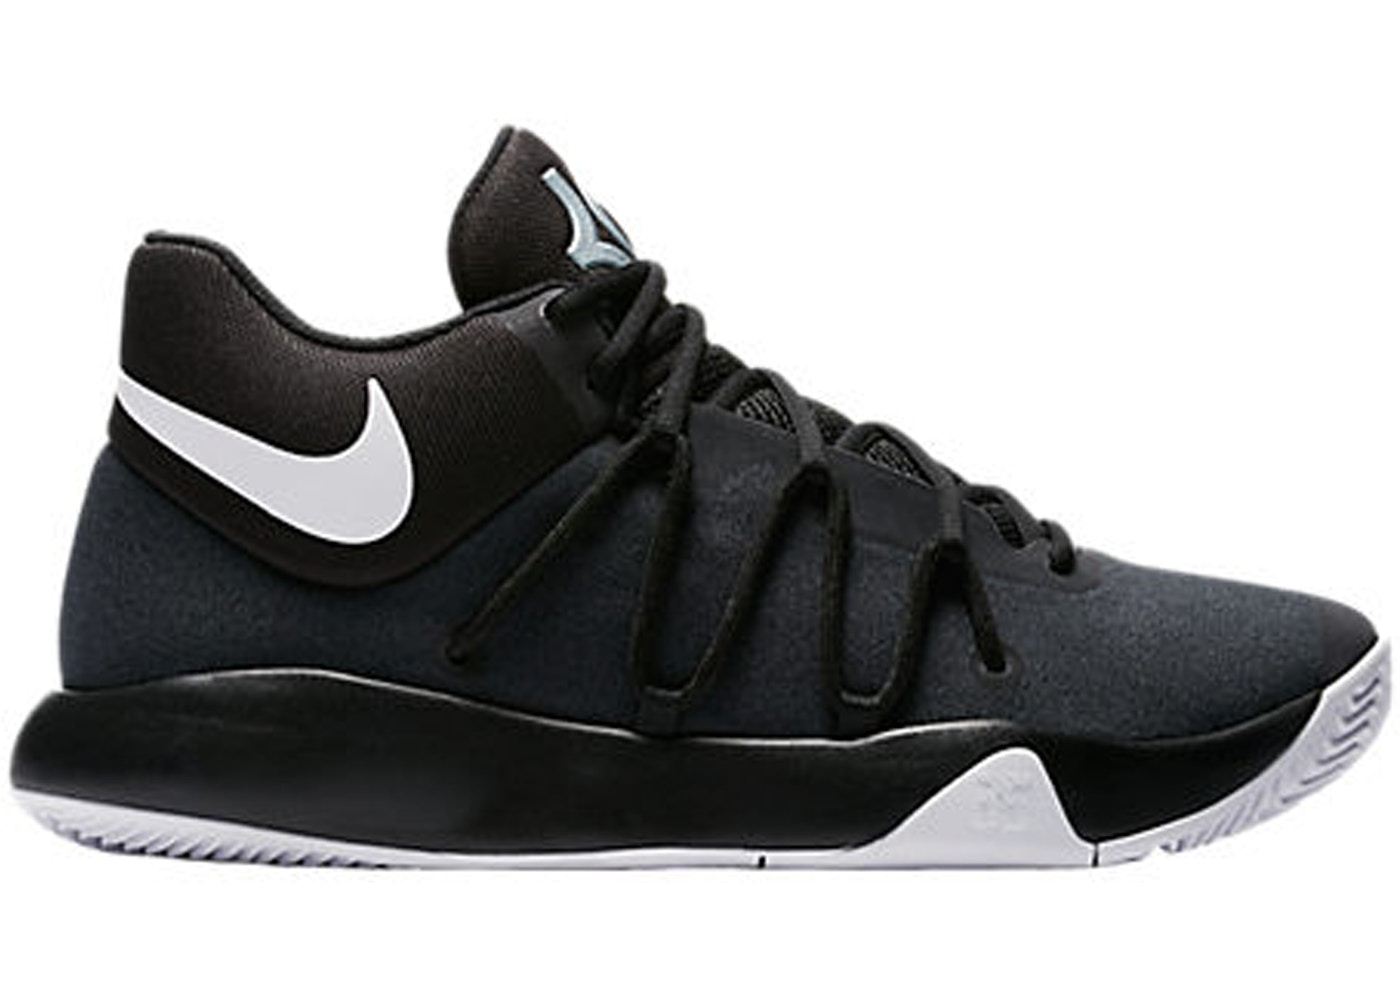 new product 259be 302fe KD Trey 5 V Anthracite Black